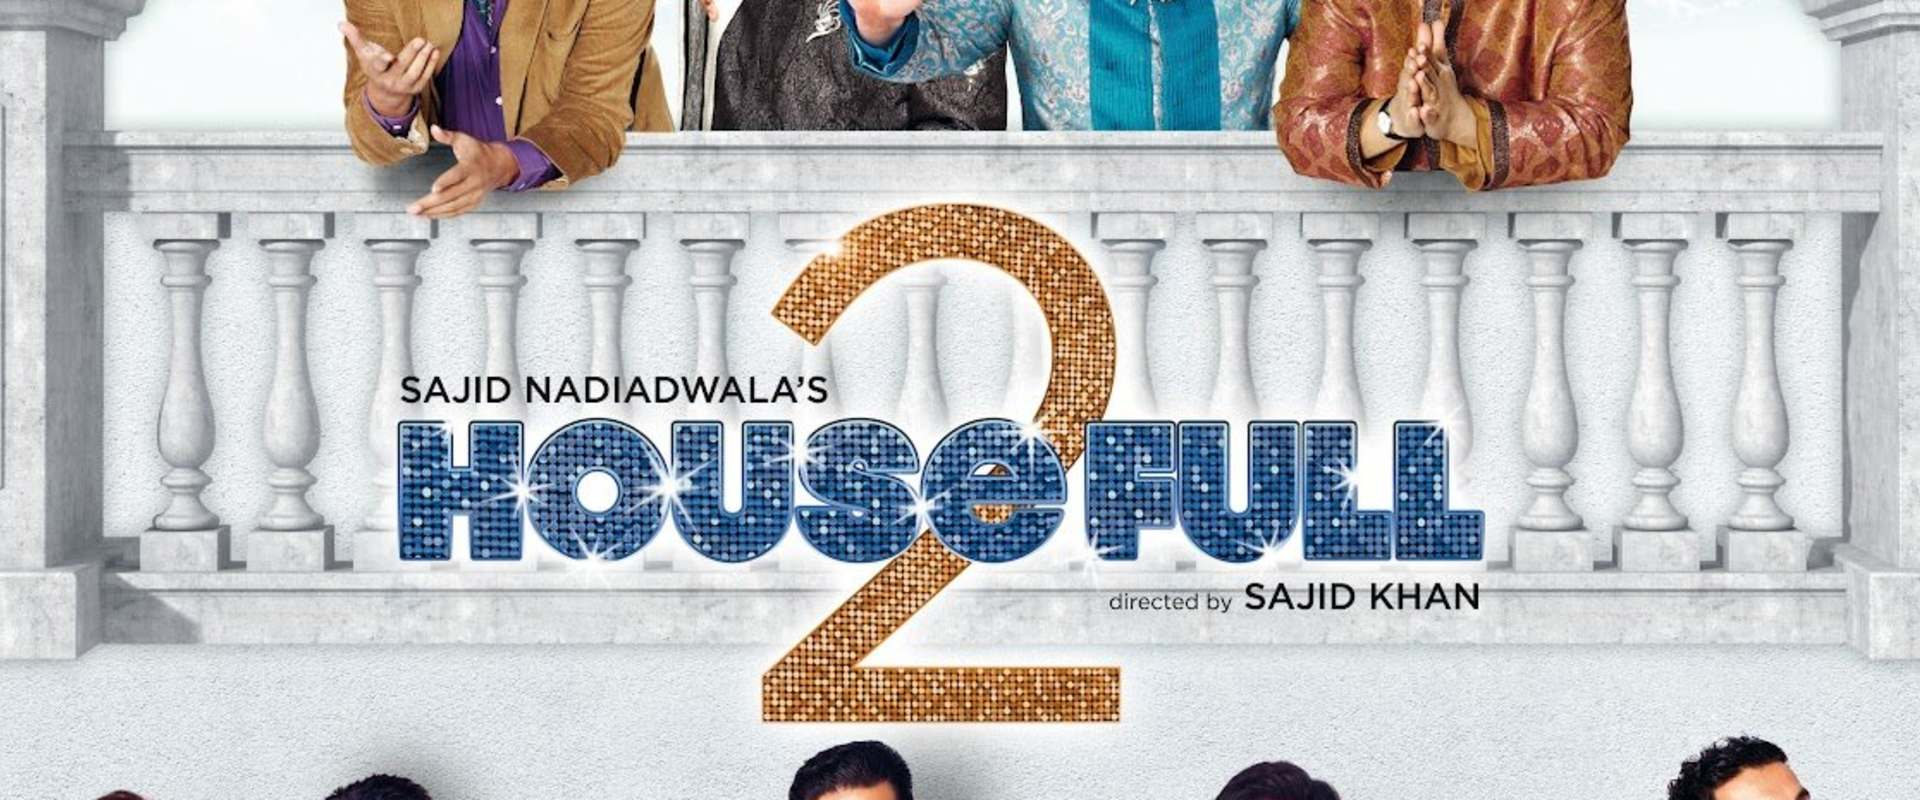 Housefull 2 background 1